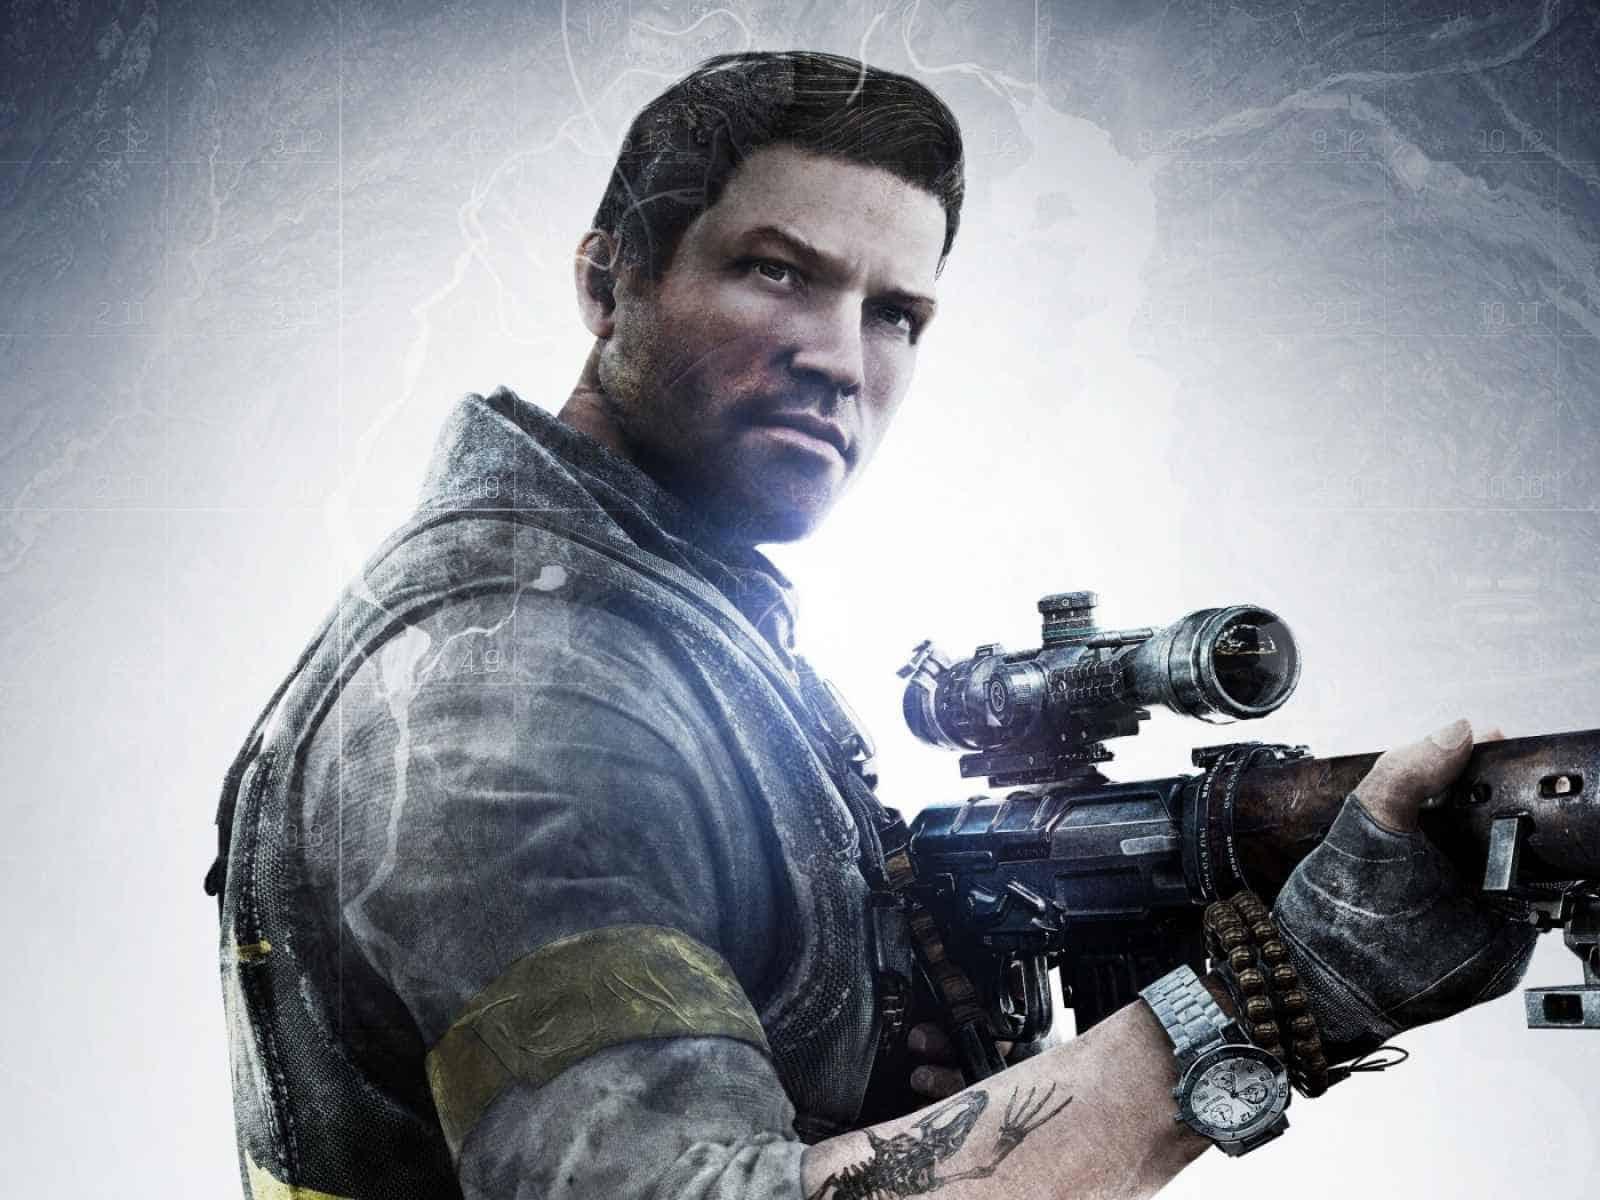 Sniper Ghost Warrior 3 Weapon 1600 1200 Hd Background Free